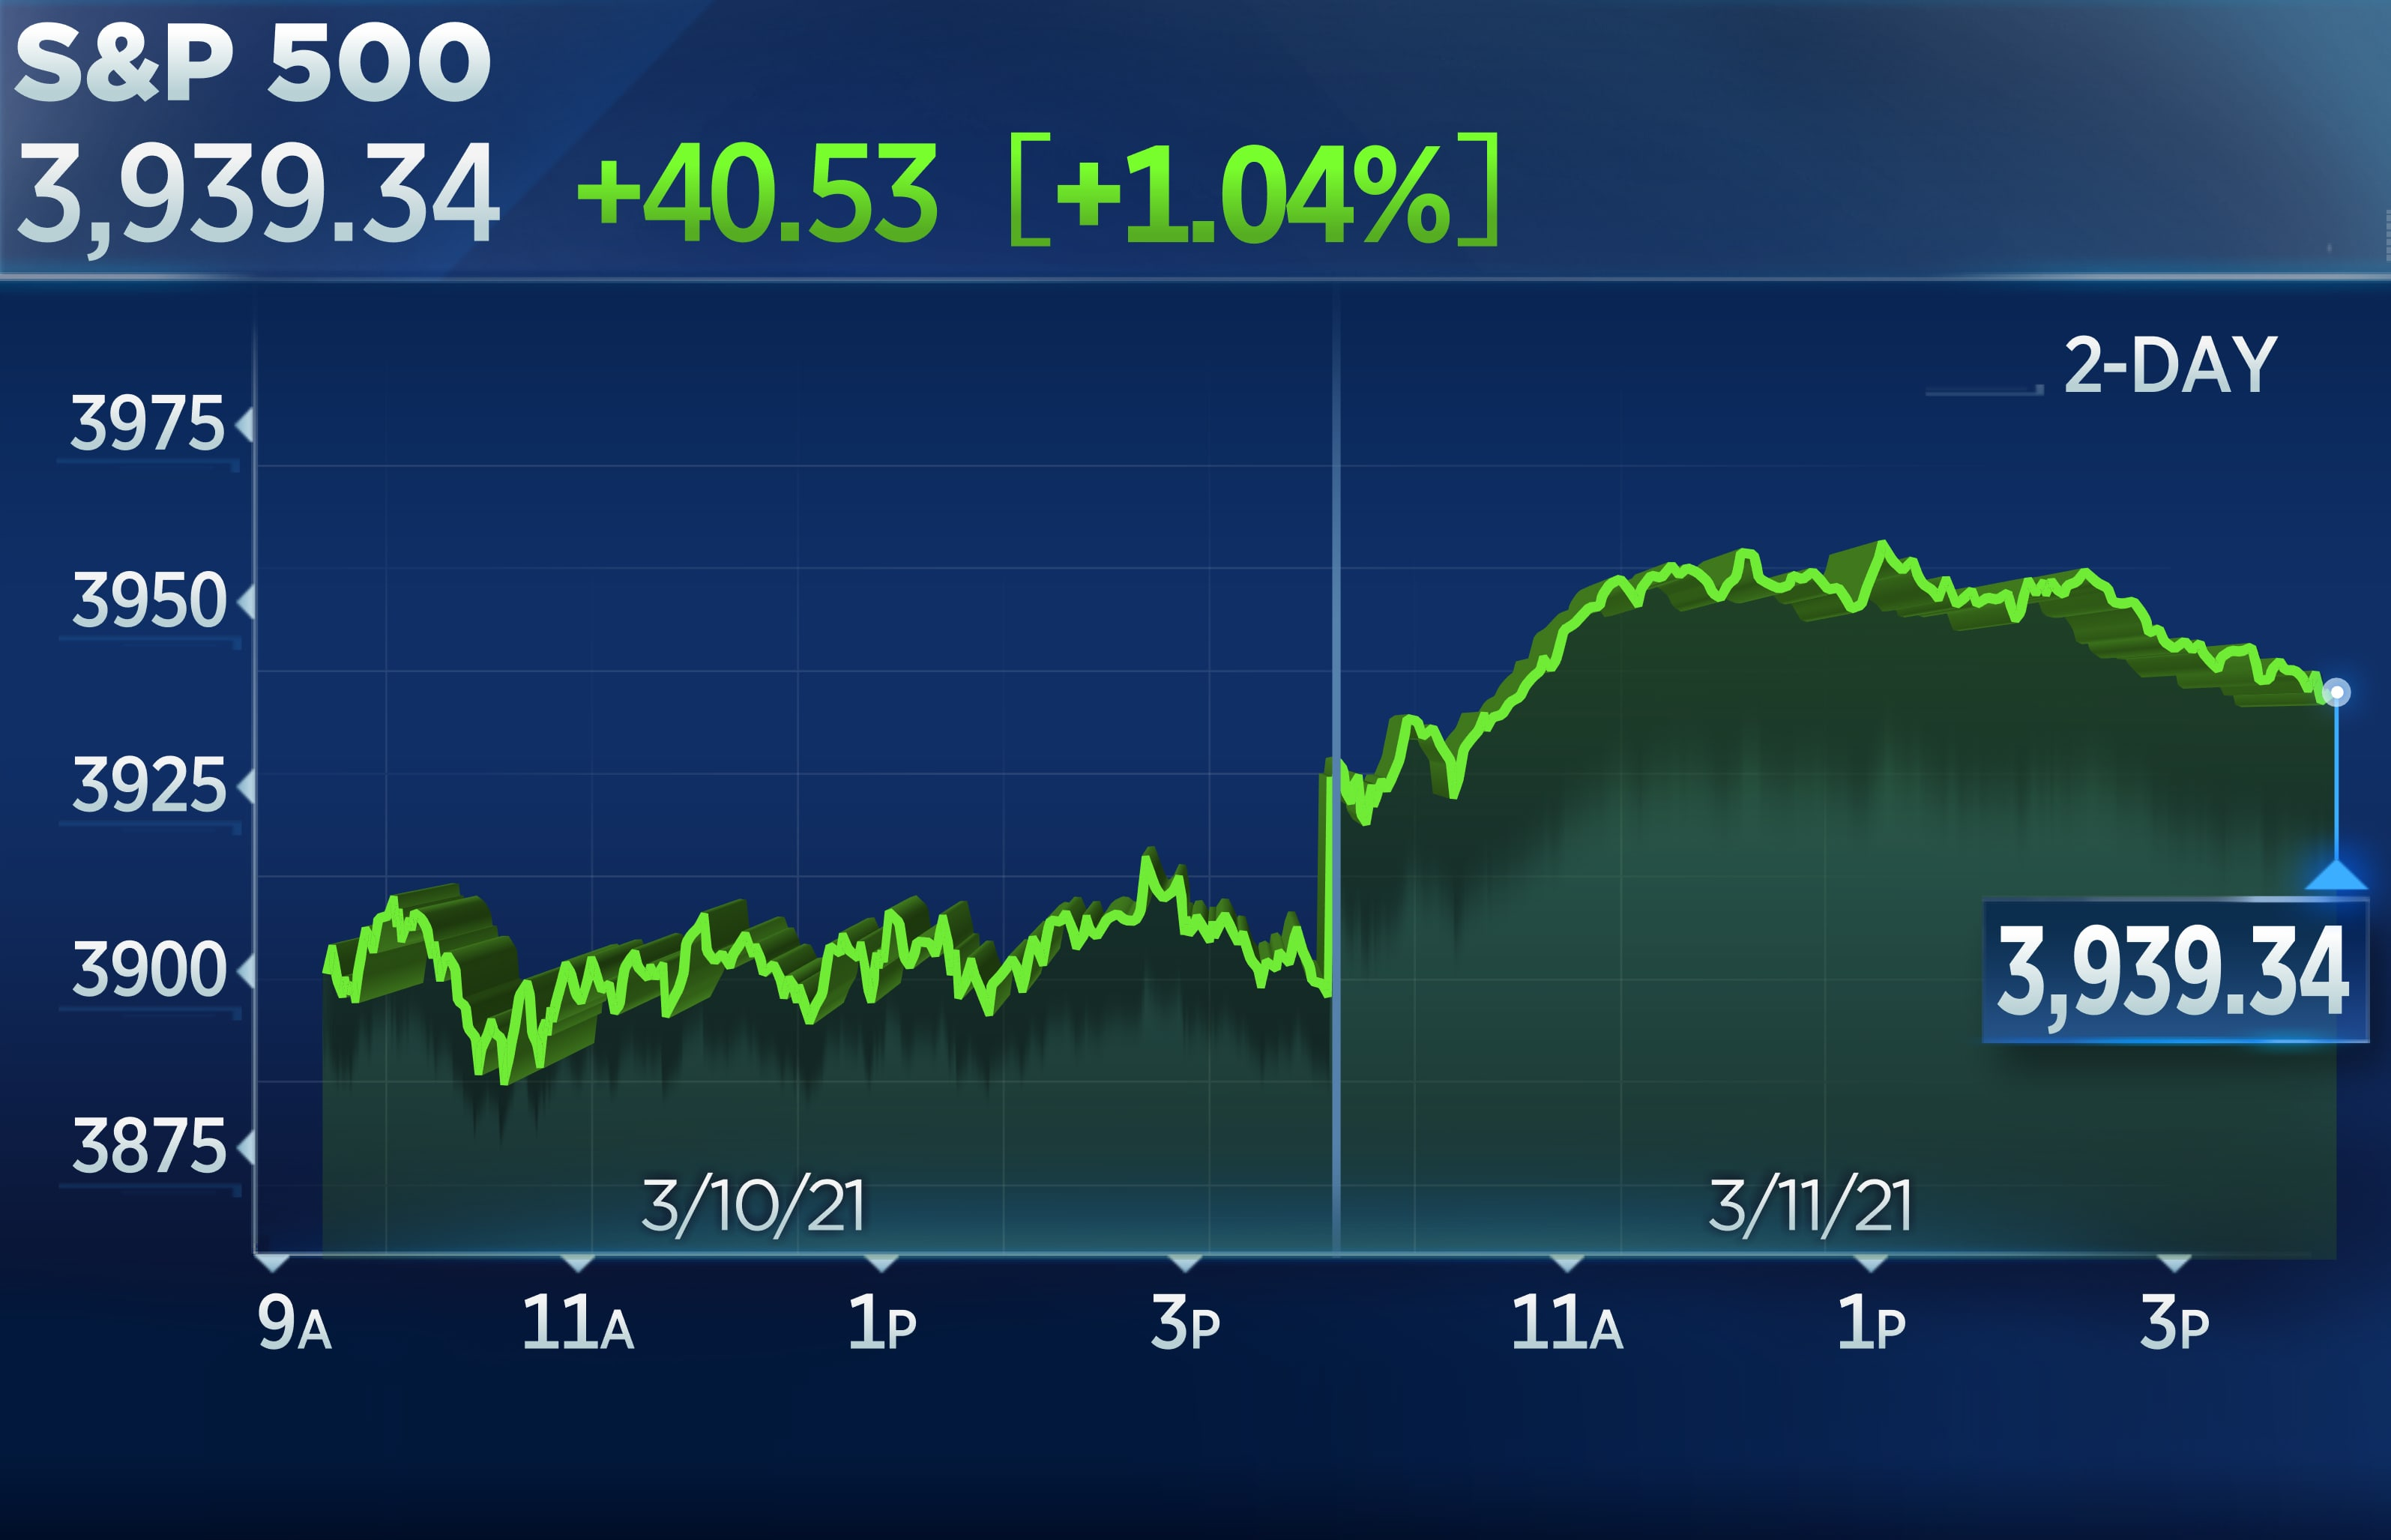 S&P 500 jumps 1% to a record as Biden signs new stimulus, Nasdaq rallies 2.5%